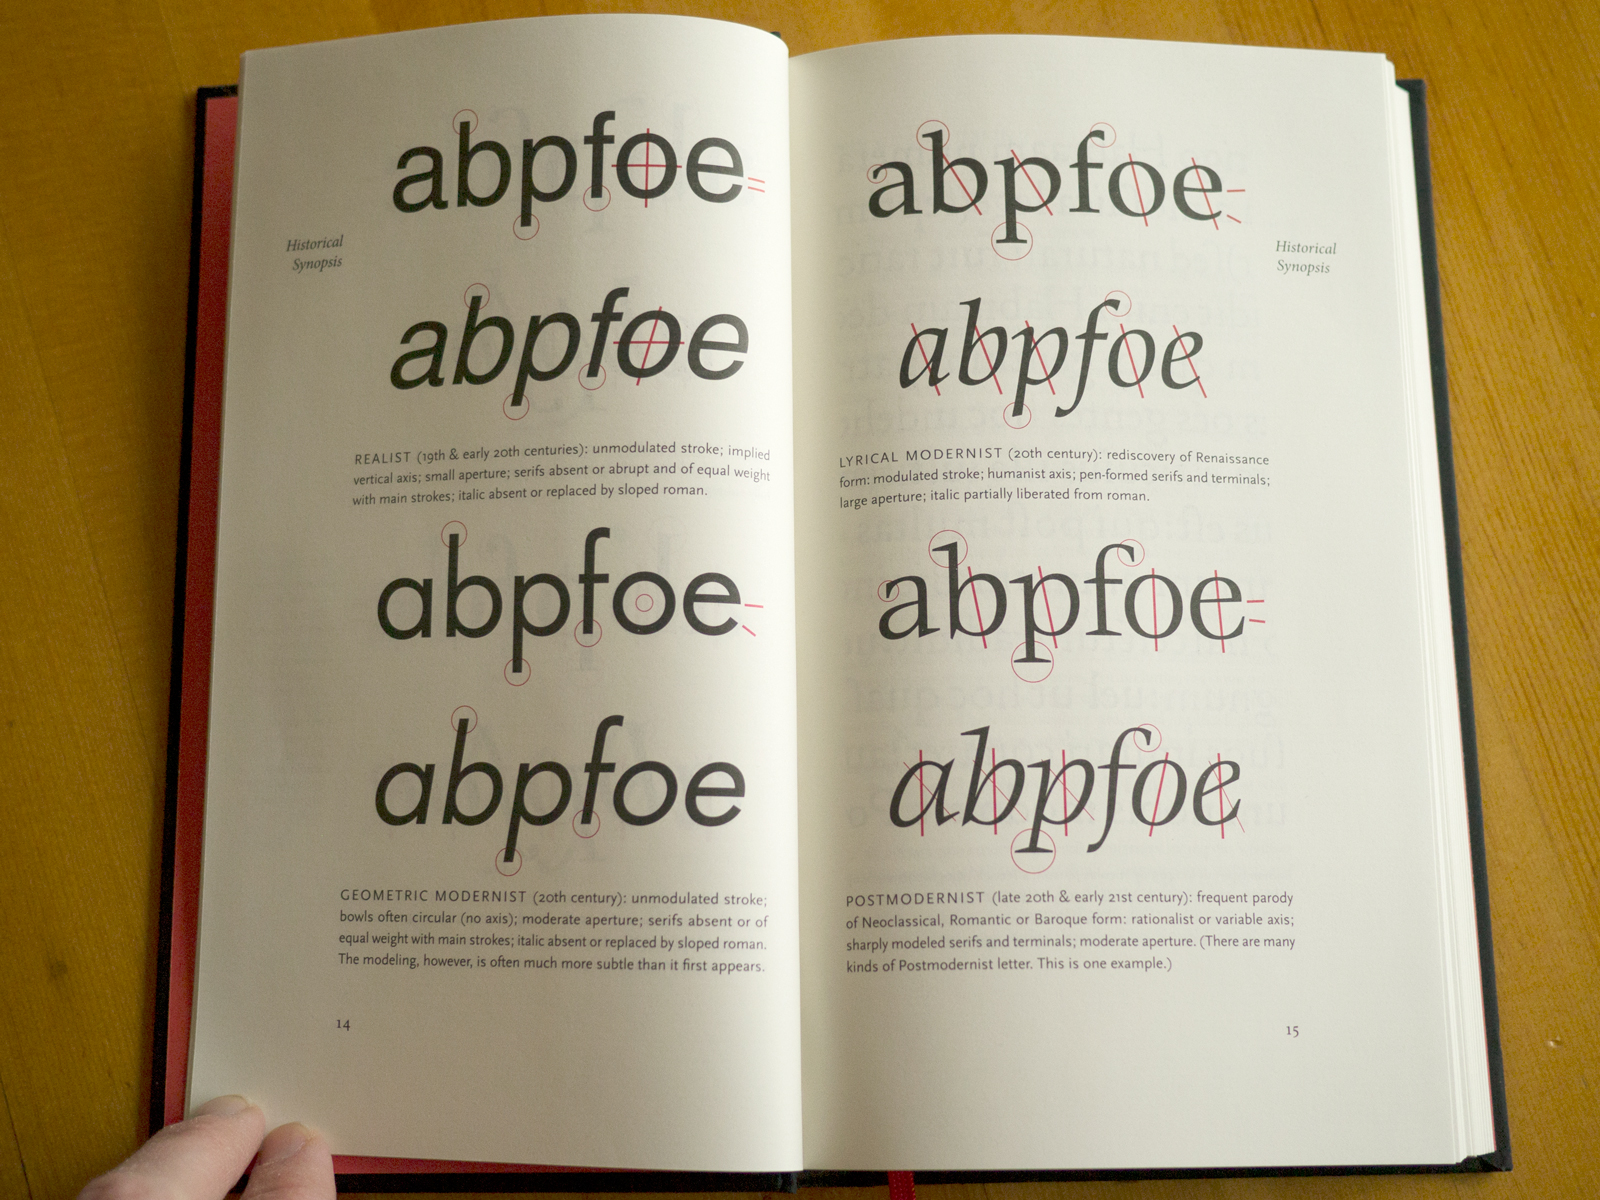 The Elements Of Typographic Style 4th Edition By Robert Bringhurst Fonts In Use